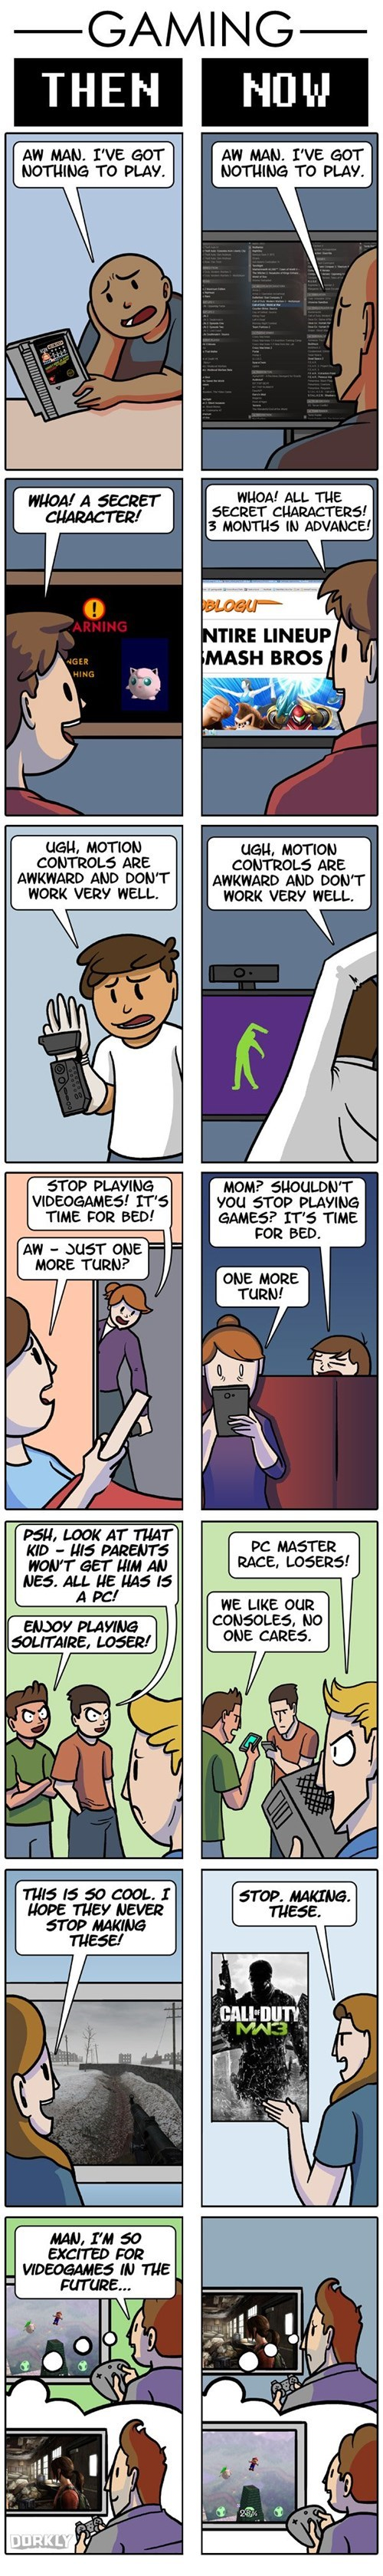 dorkly,gaming,nostalgia,gamers,web comics